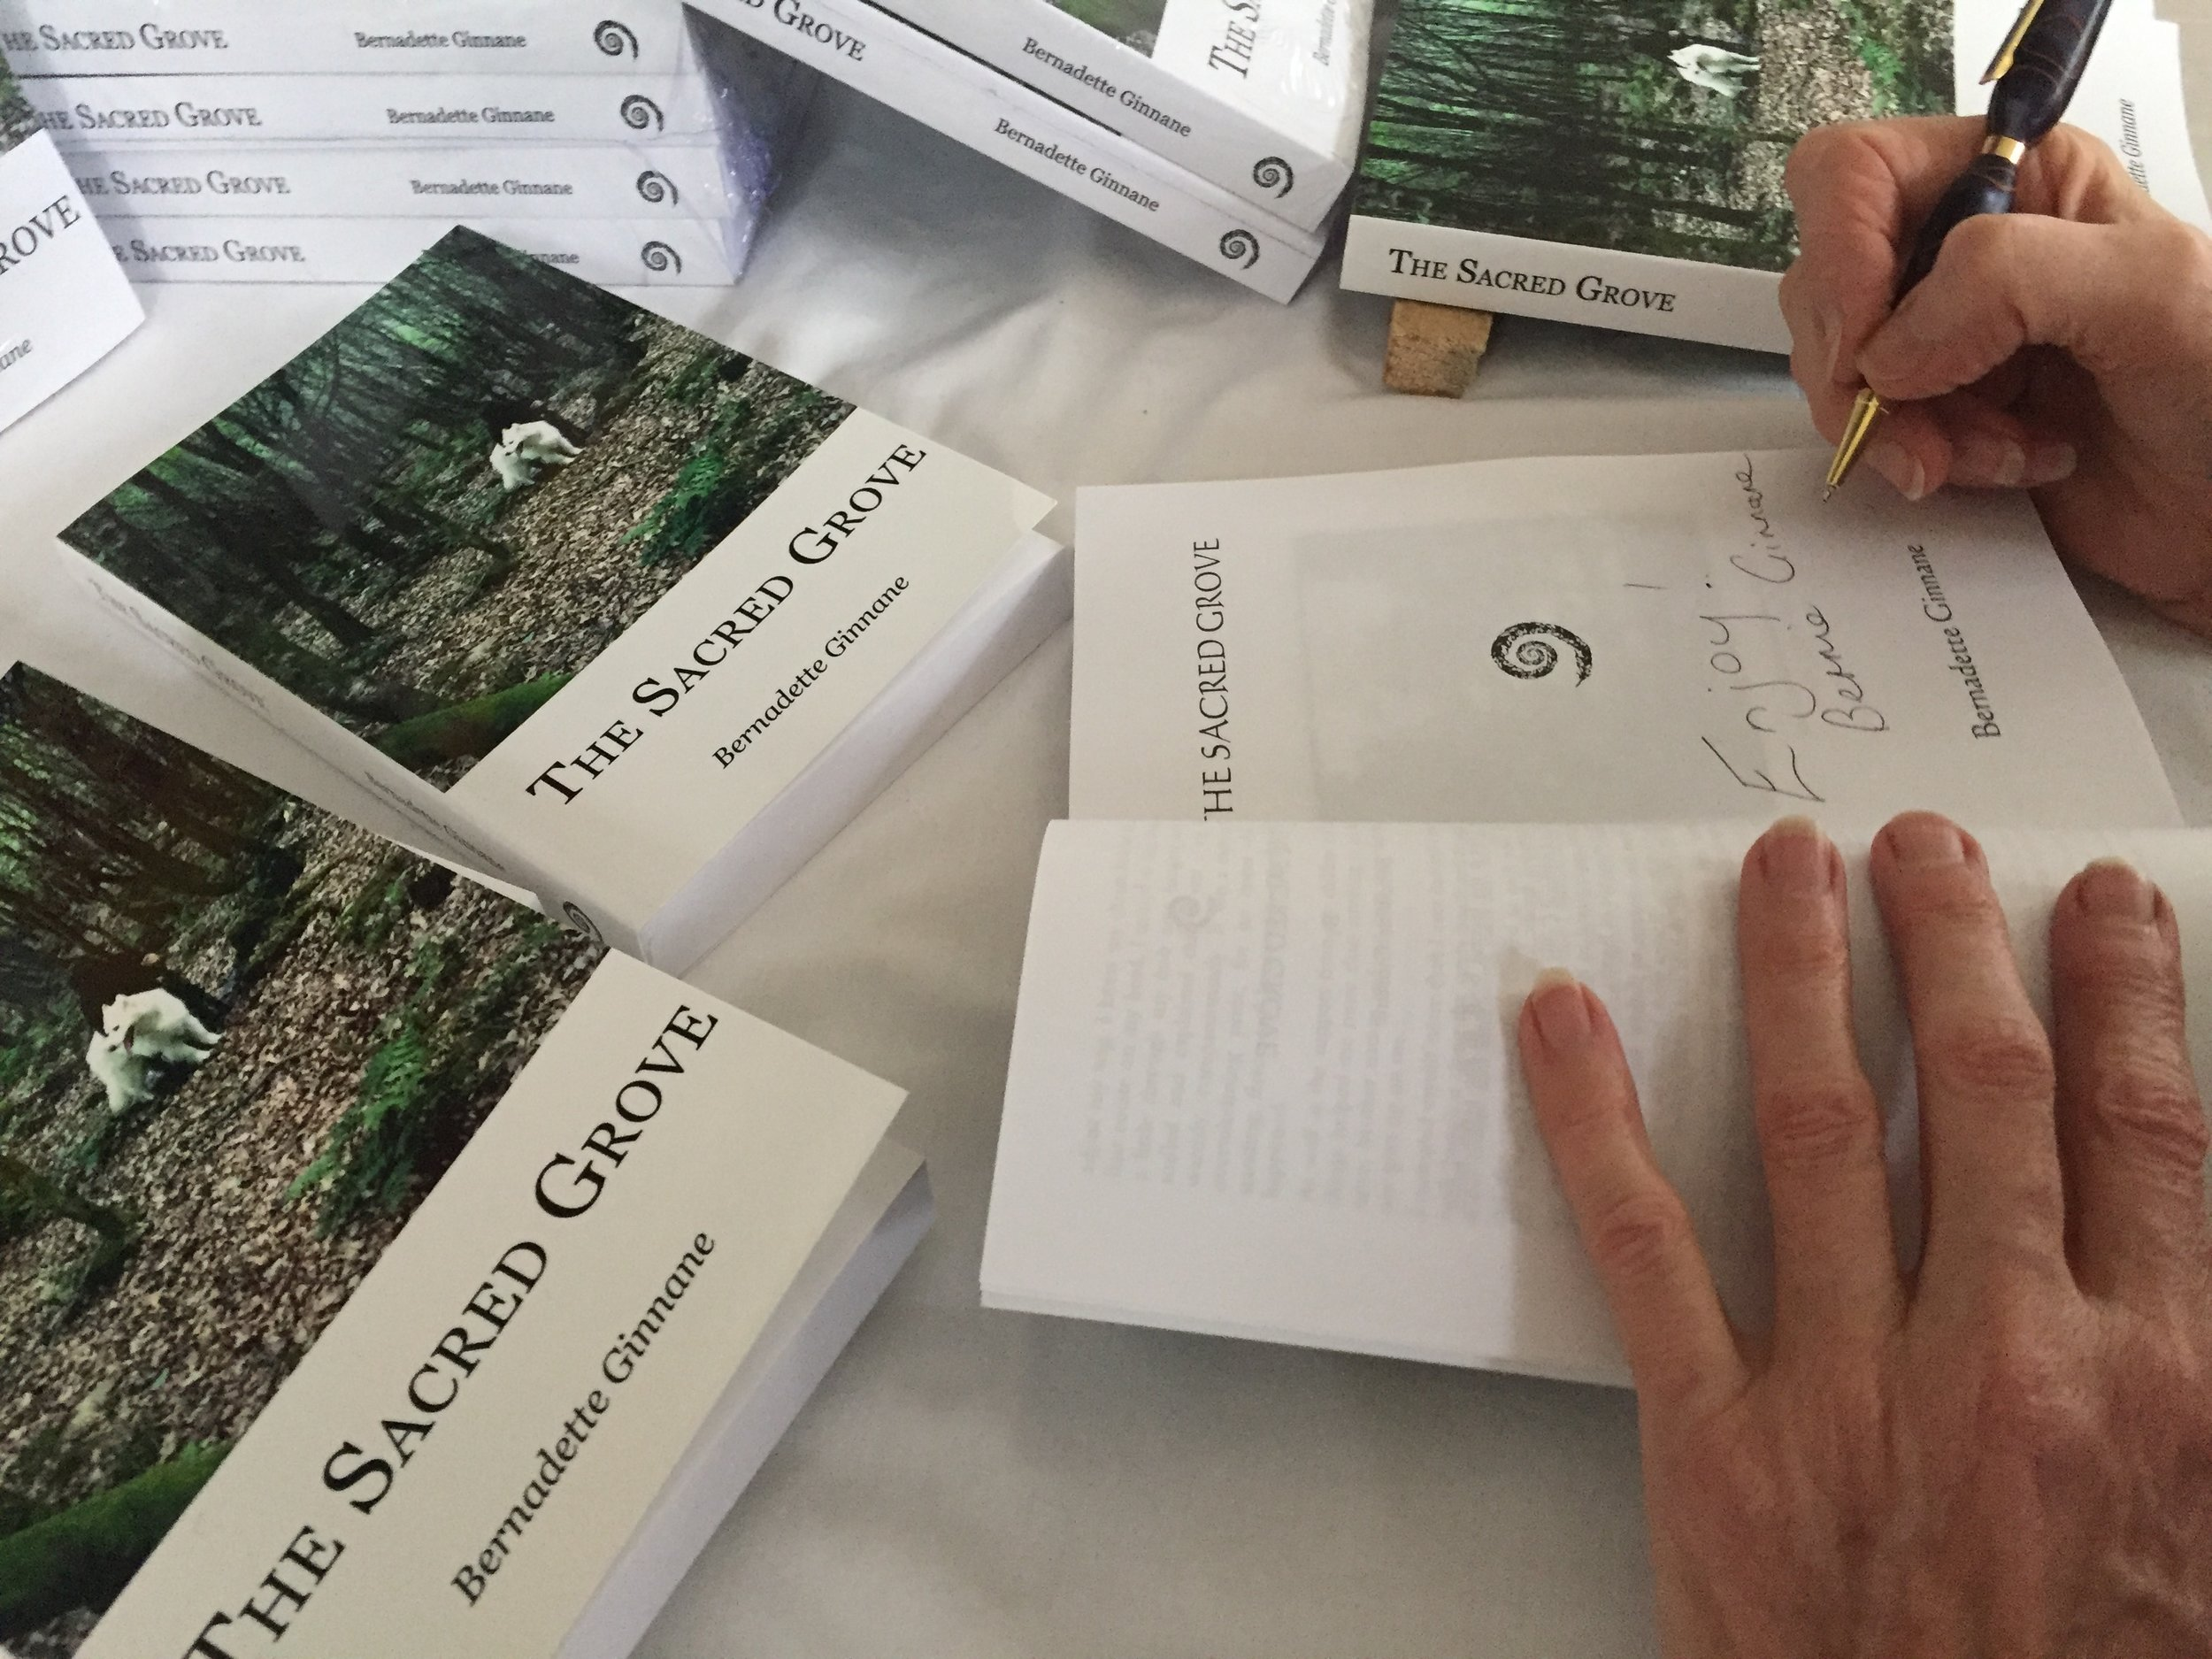 The Sacred Grove - Buy Now via Kindle or receive your very own signed hard copy by clicking here